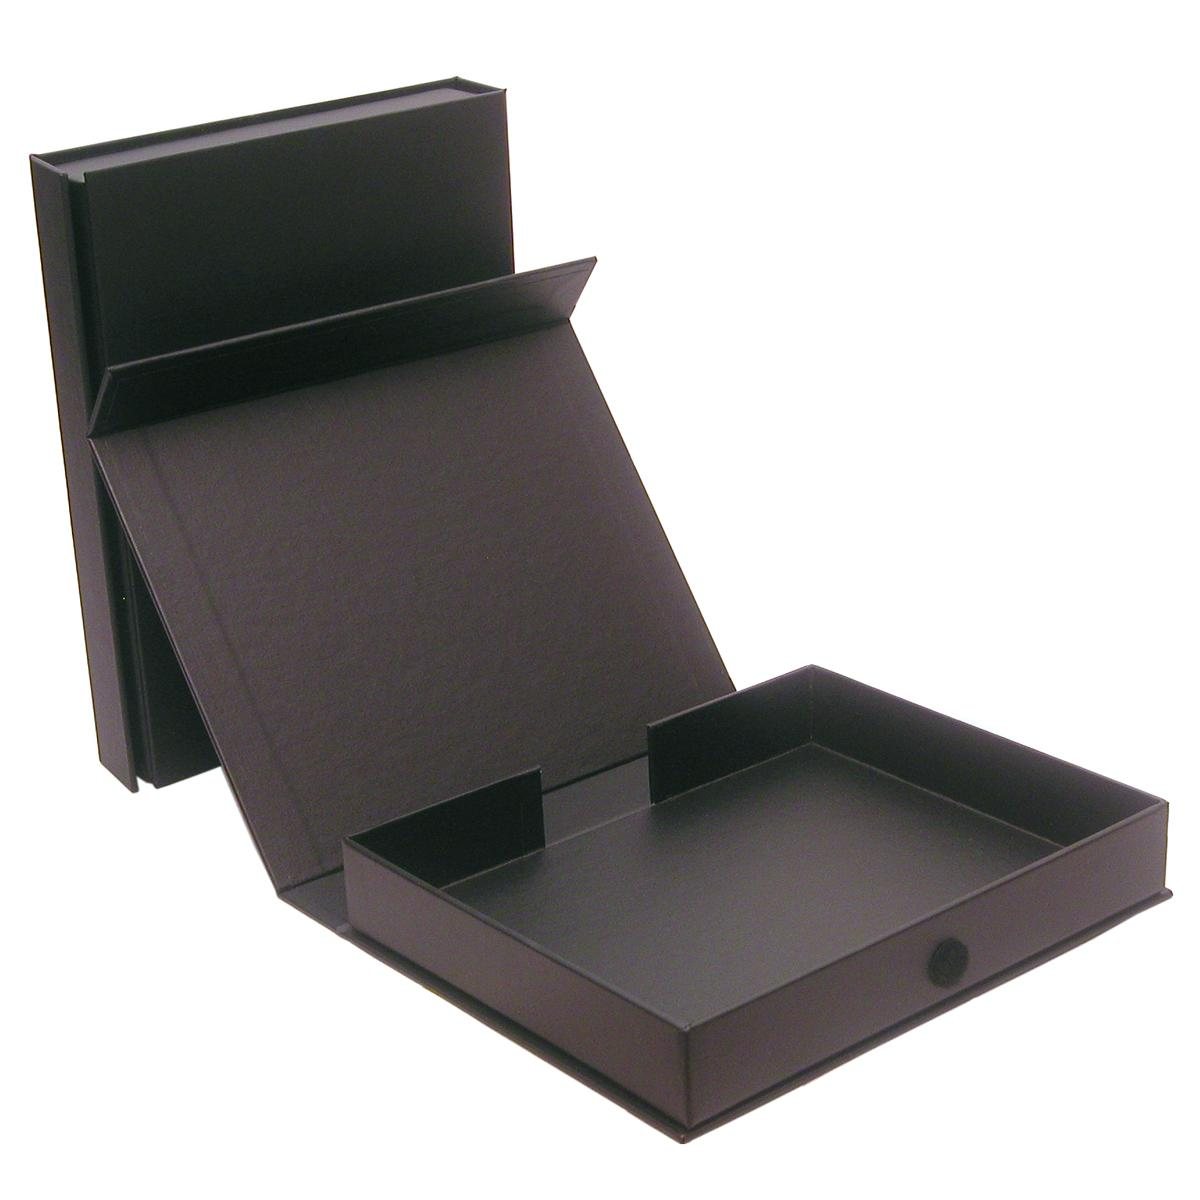 sc 1 st  Talas & Premium Fabric Covered Presentation Tray Box | TALAS Aboutintivar.Com